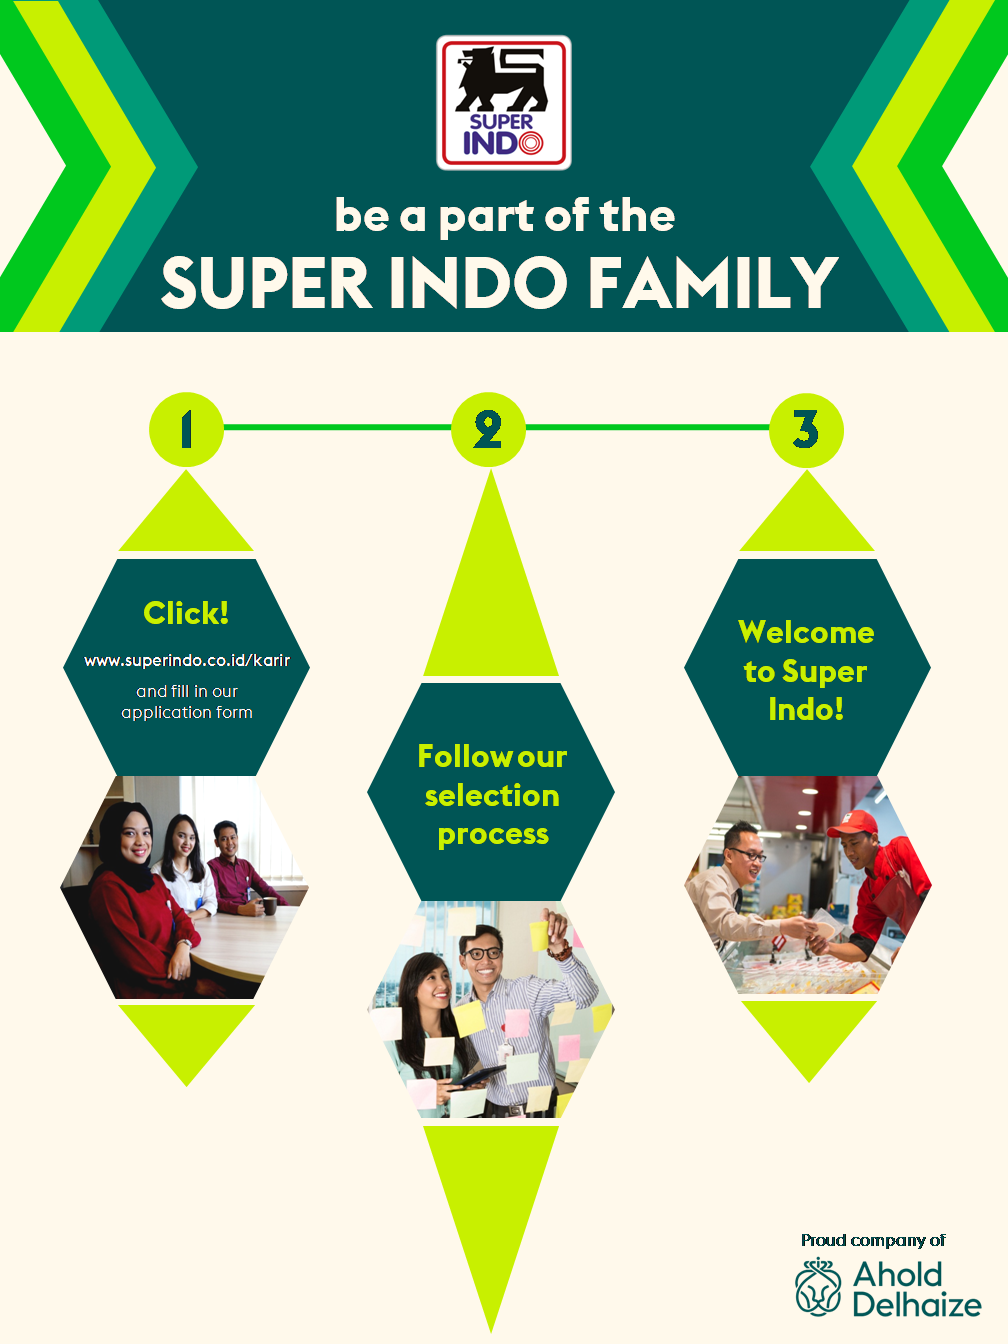 Be a part of the Super Indo family